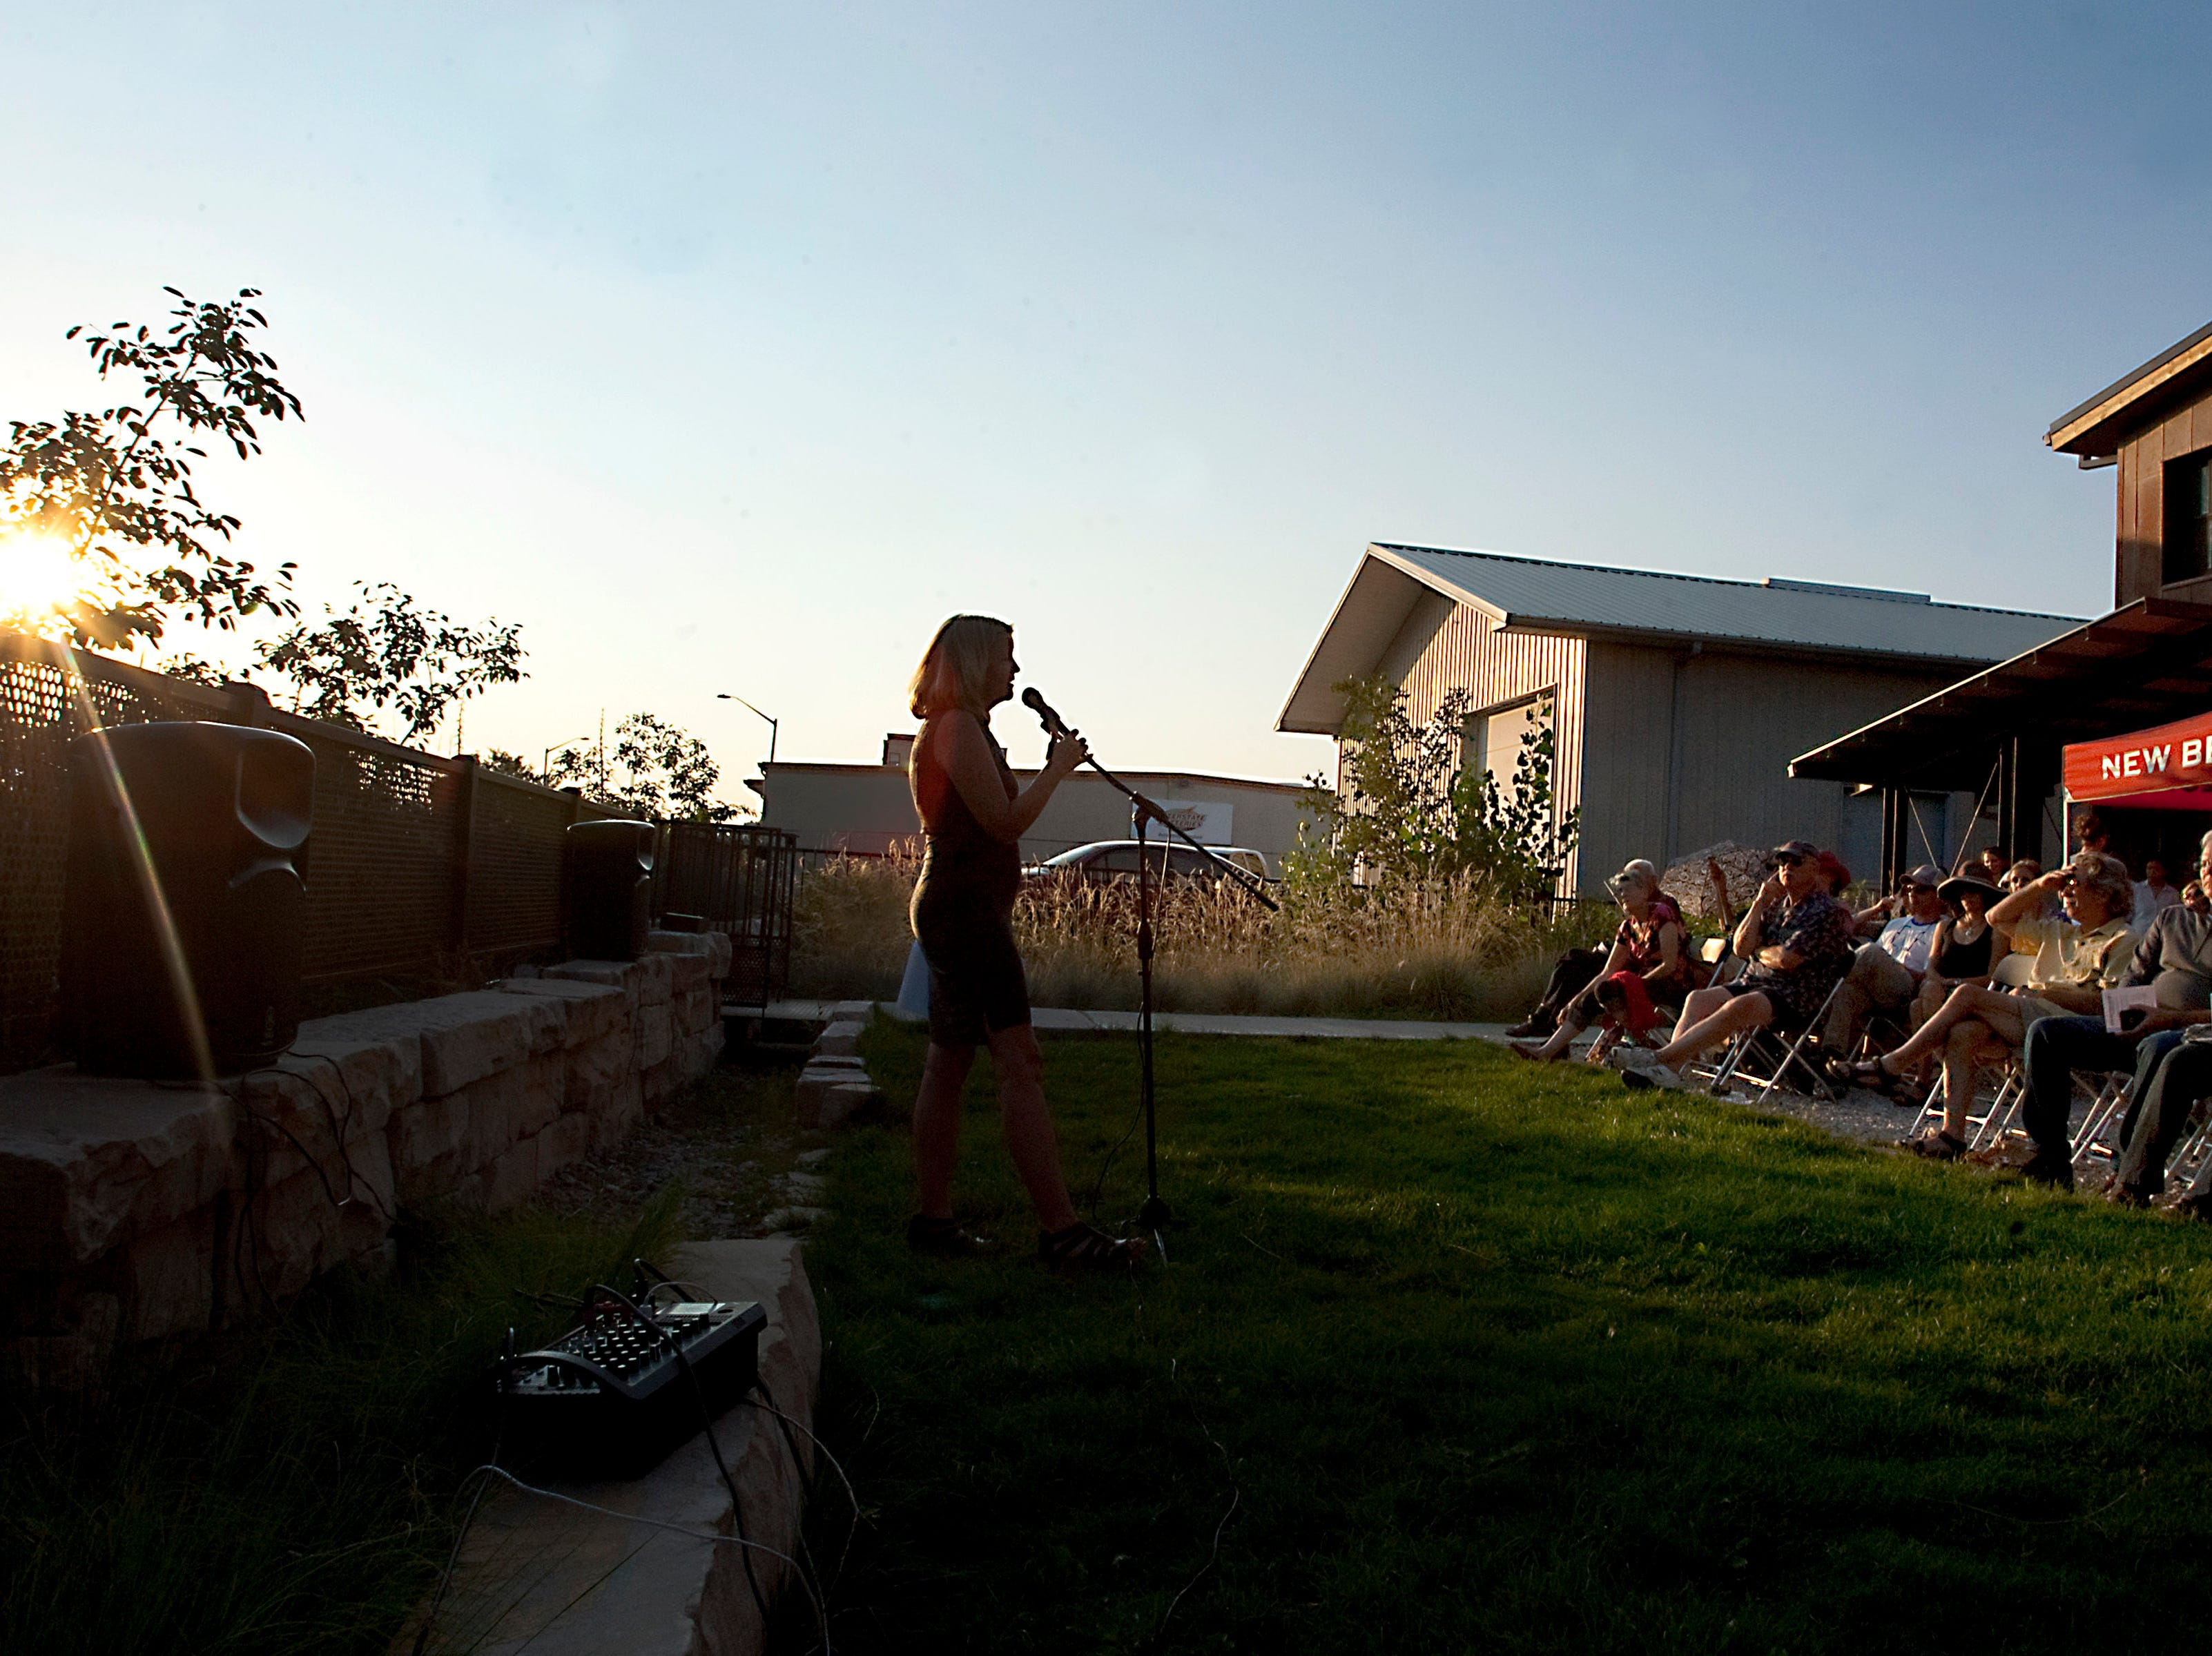 Storyteller Julie Ulstrup shares her story about her son receiving the Silver Star, during the Coloradoan Storytellers Project held at Wolverine Farm Letterpress & Publick House on Wednesday, Aug. 8, 2018. The topic for this quarterly event was parenthood.